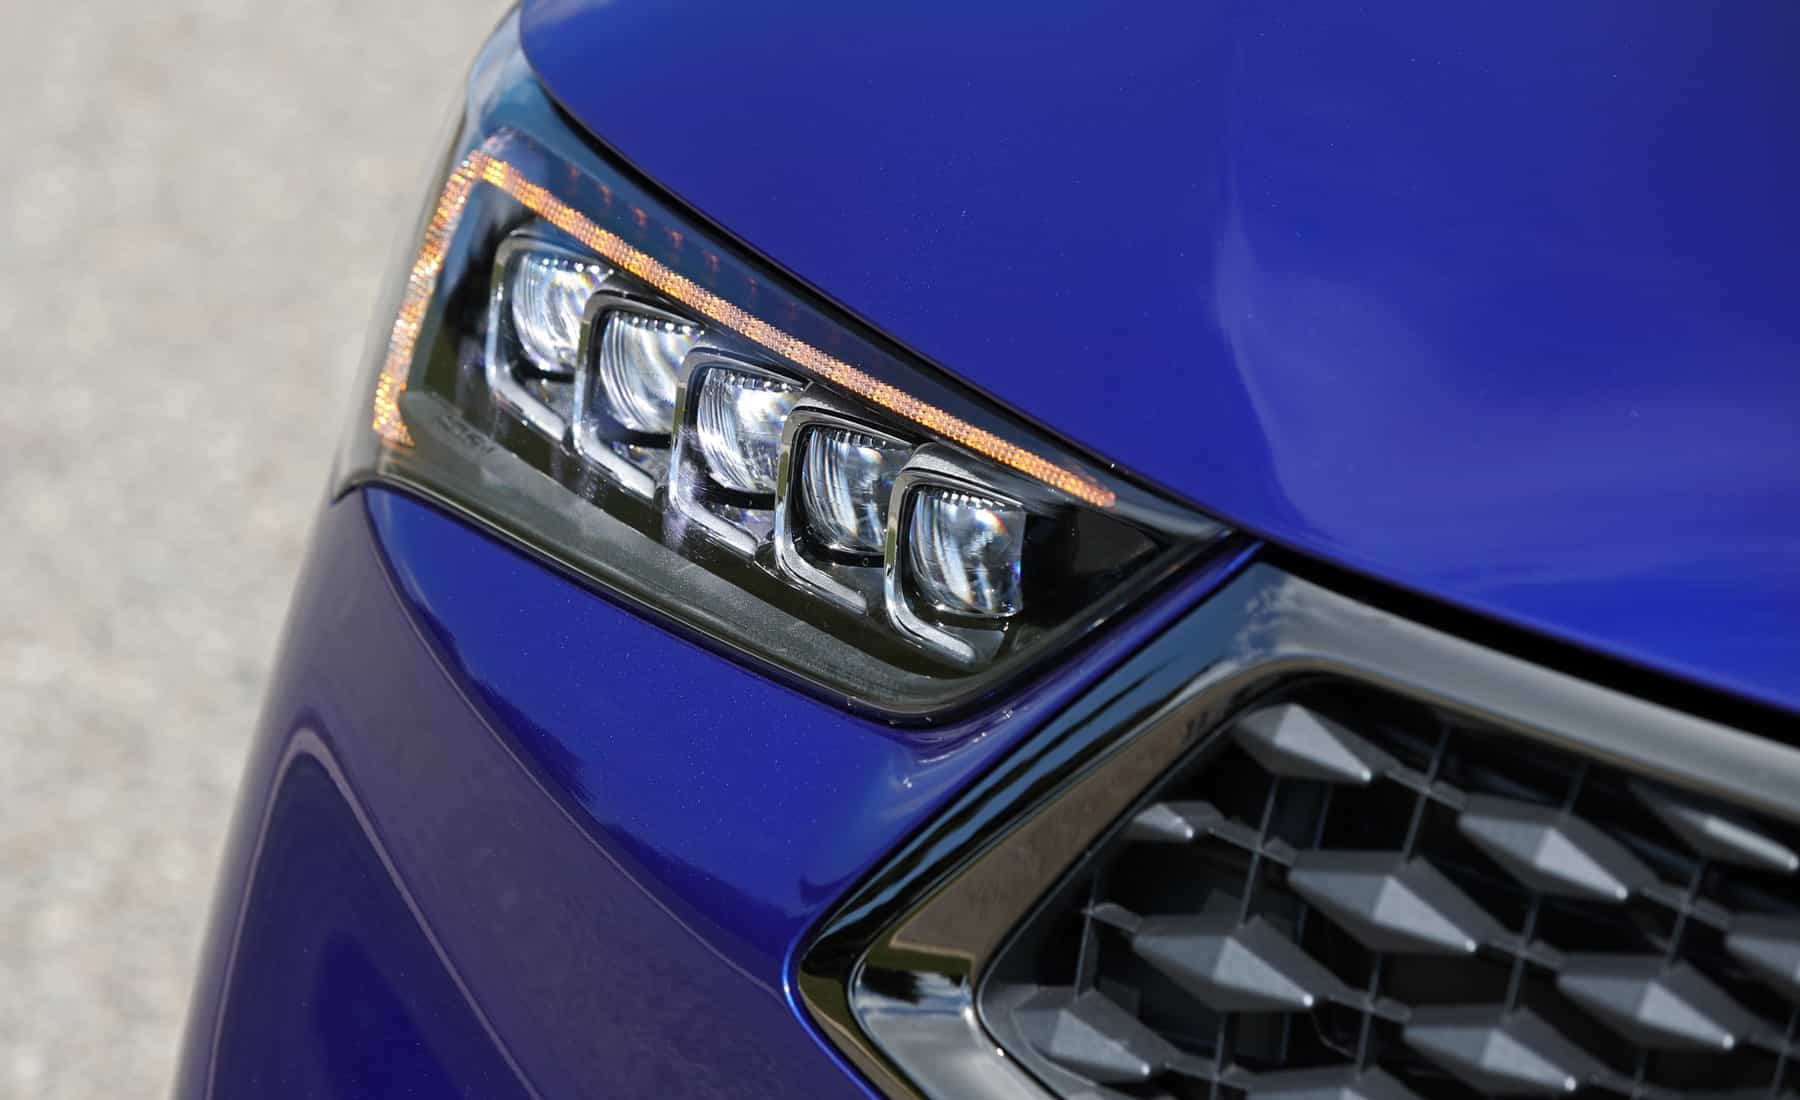 2018 Acura TLX Exterior View Headlight (View 40 of 46)